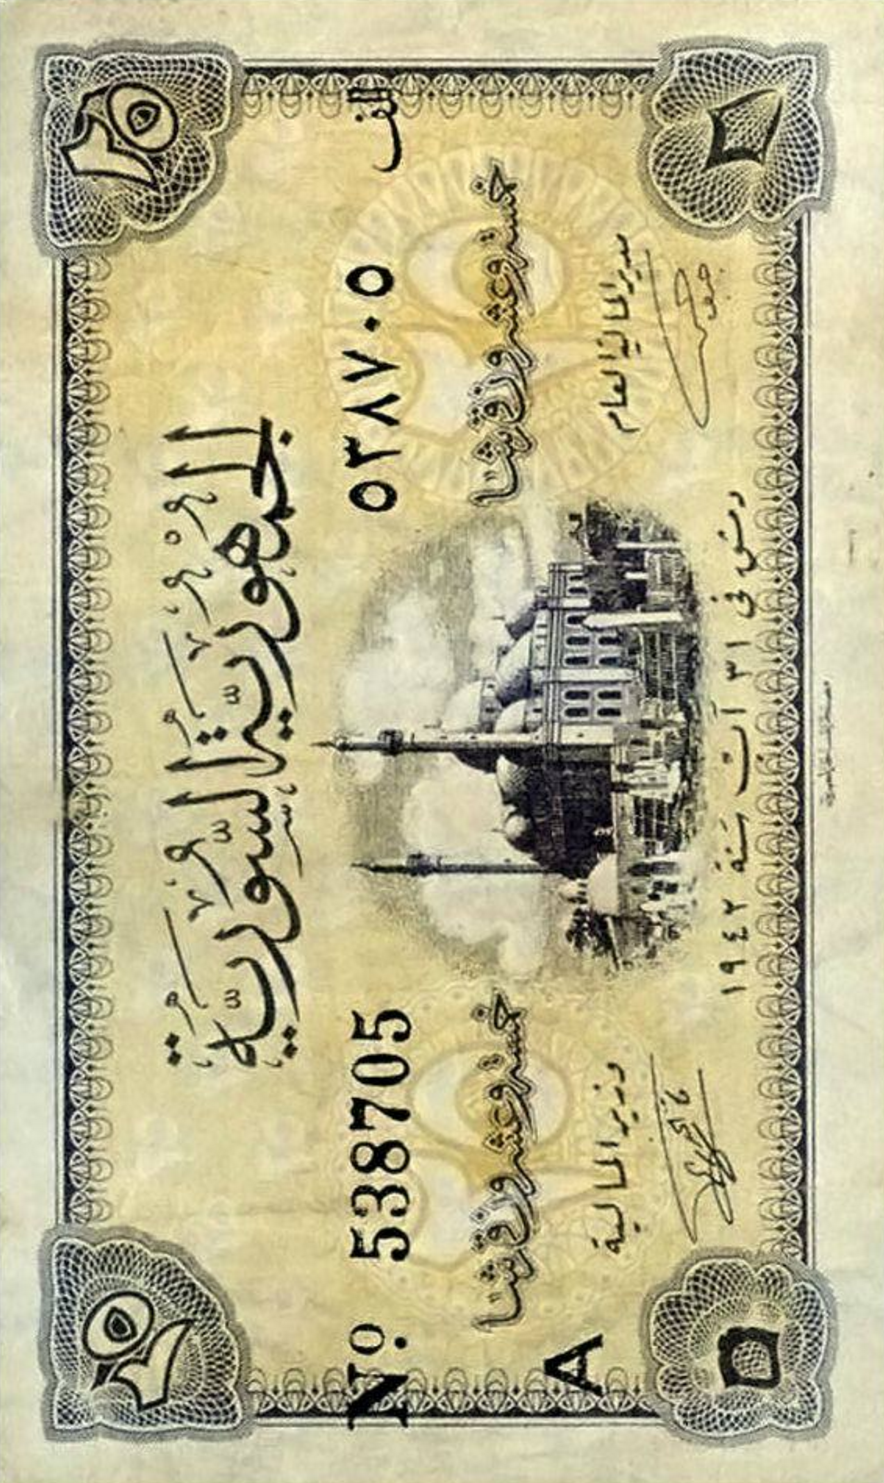 1942 25 Piasters Currency Design Damascus Syria Syria Pictures